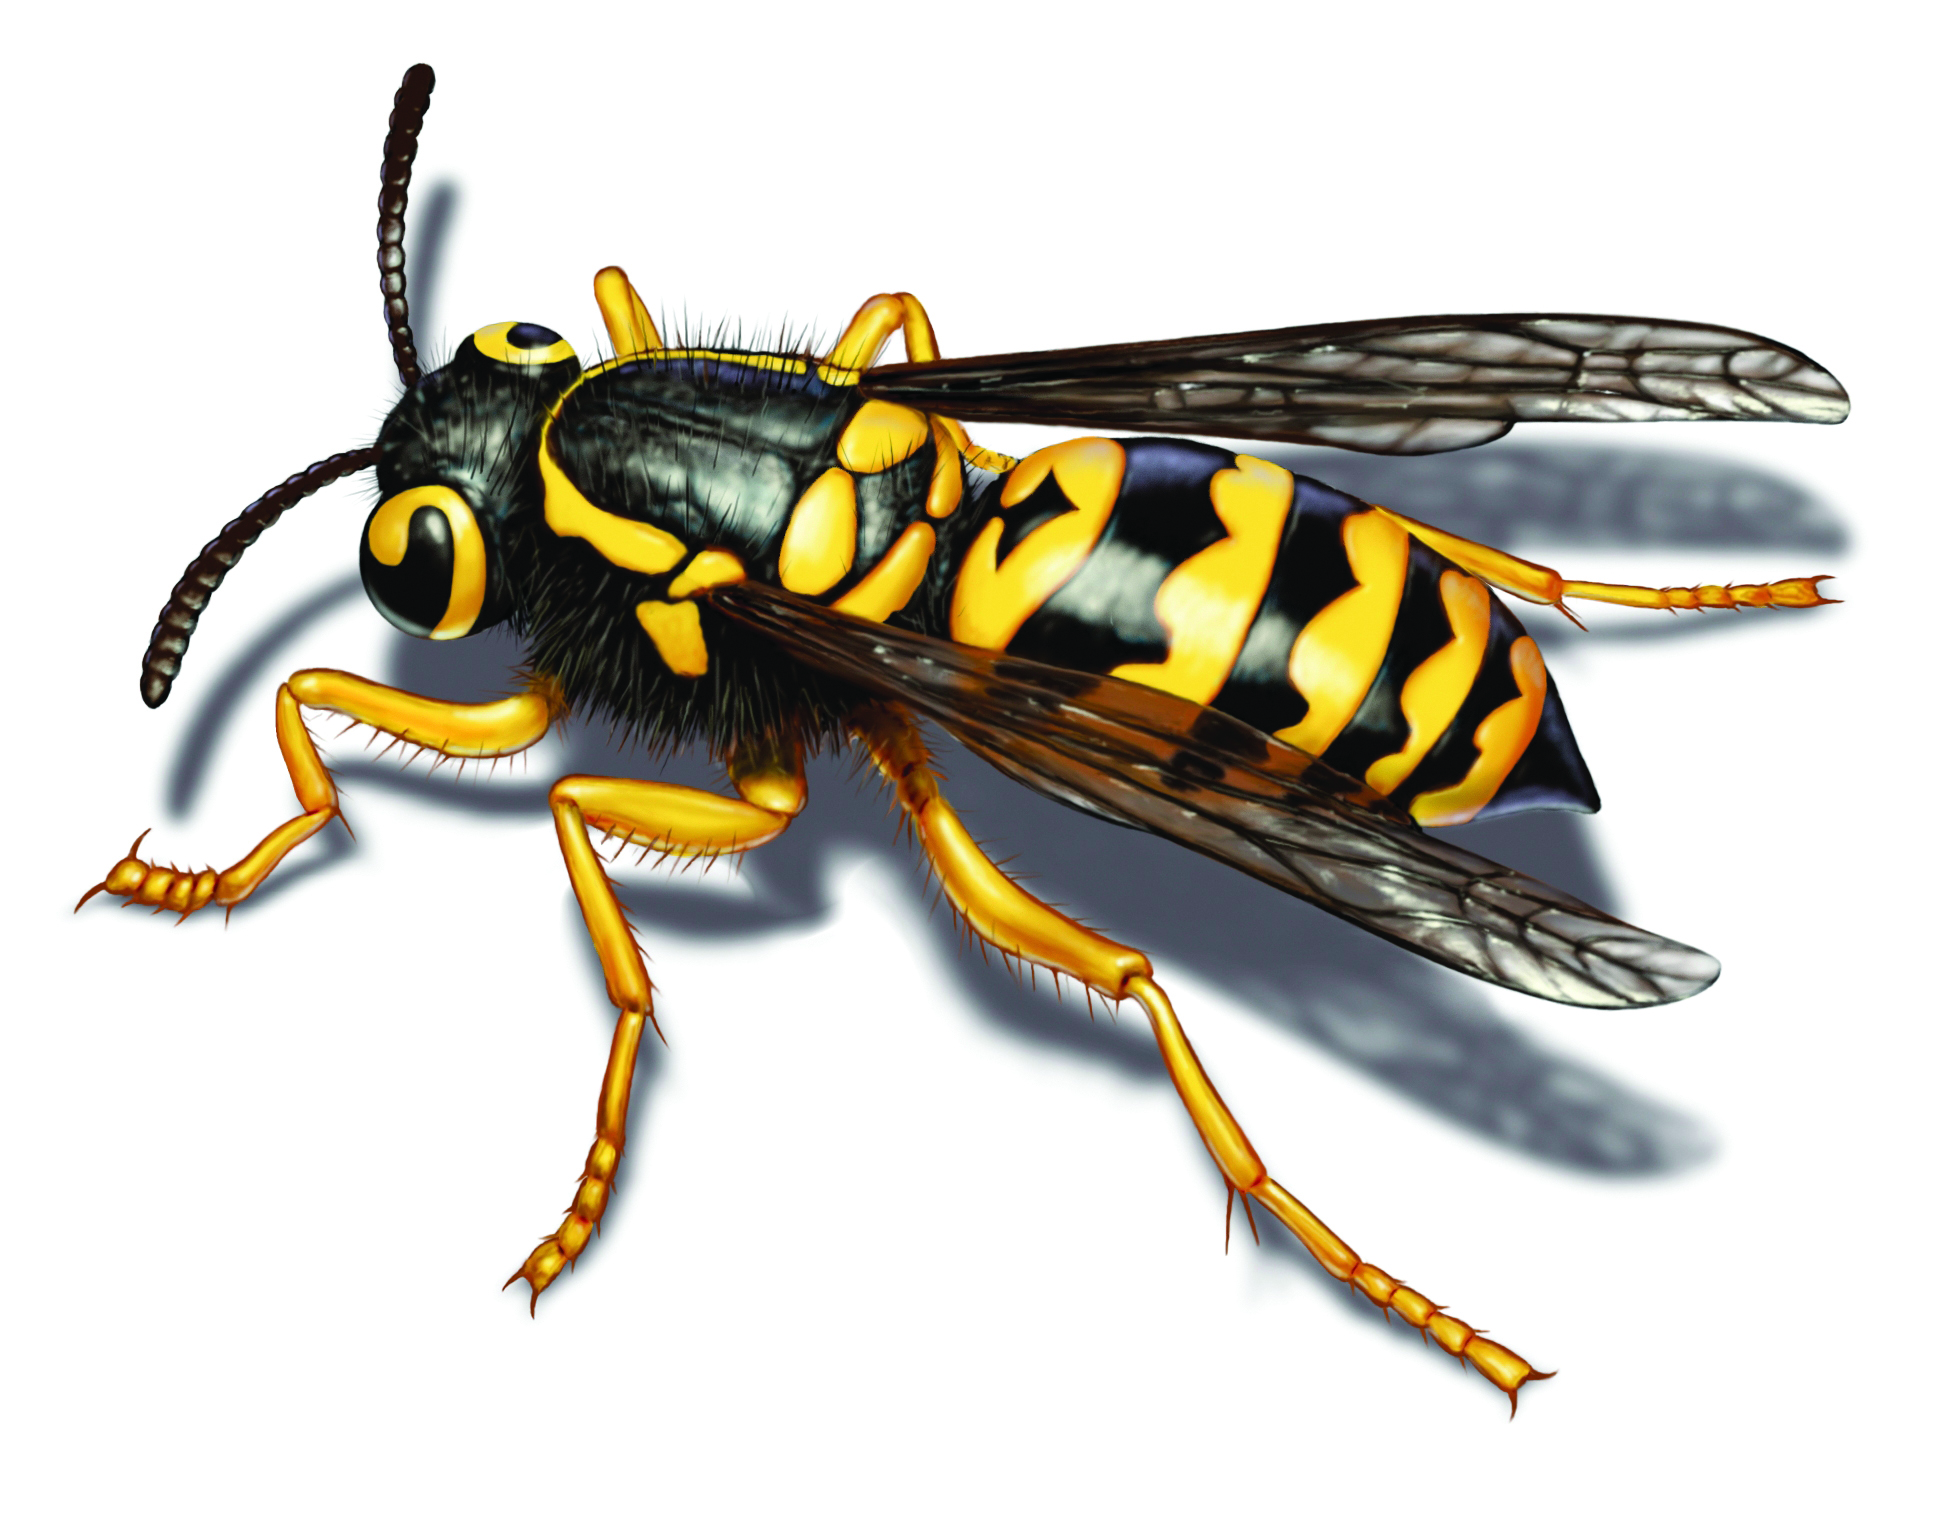 Yellow Jacket Removal - Get Rid of Yellow Jackets